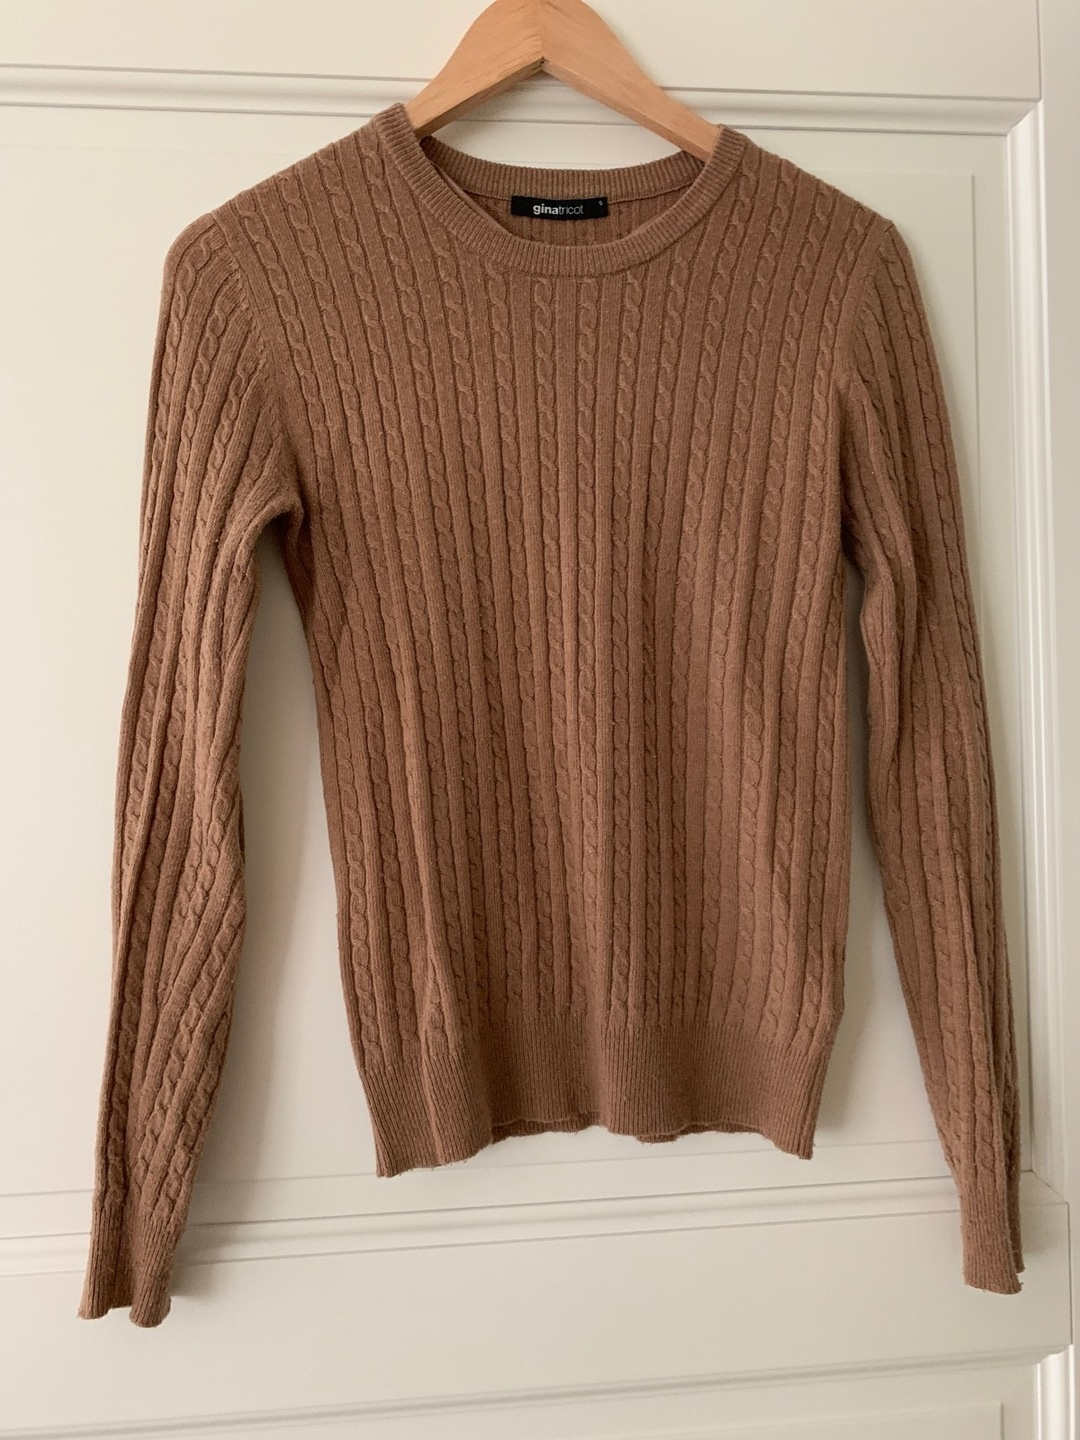 Women's jumpers & cardigans - GINA TRICOT photo 1